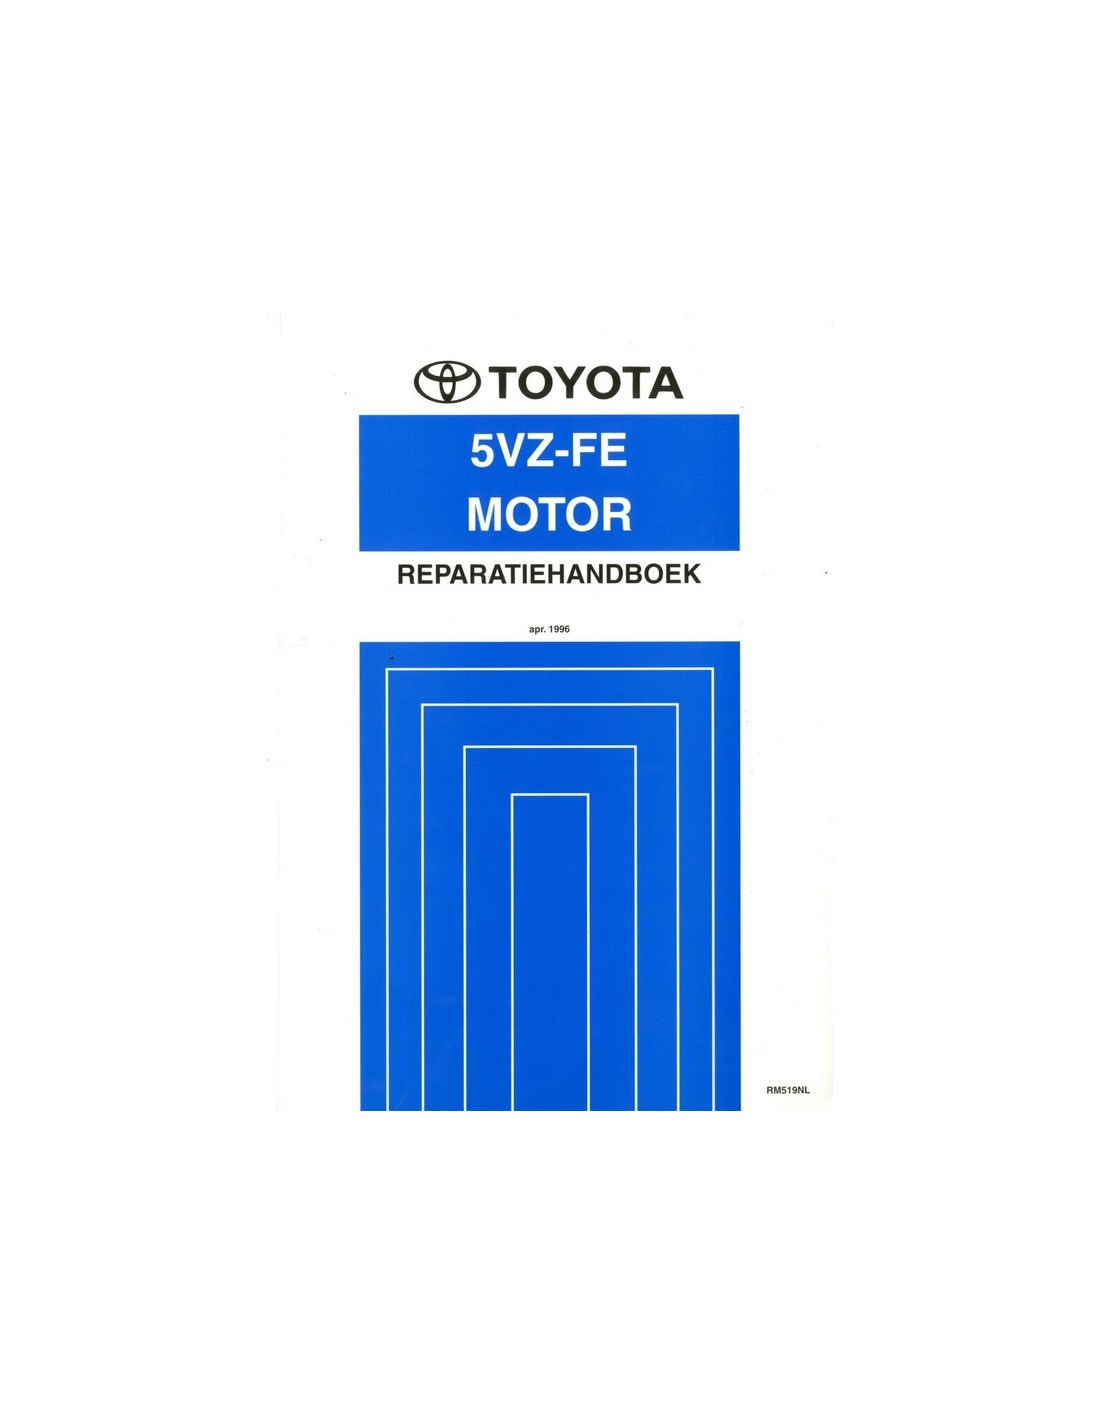 1996 toyota land cruiser prado 5vz fe engine repair manual rh autolit eu